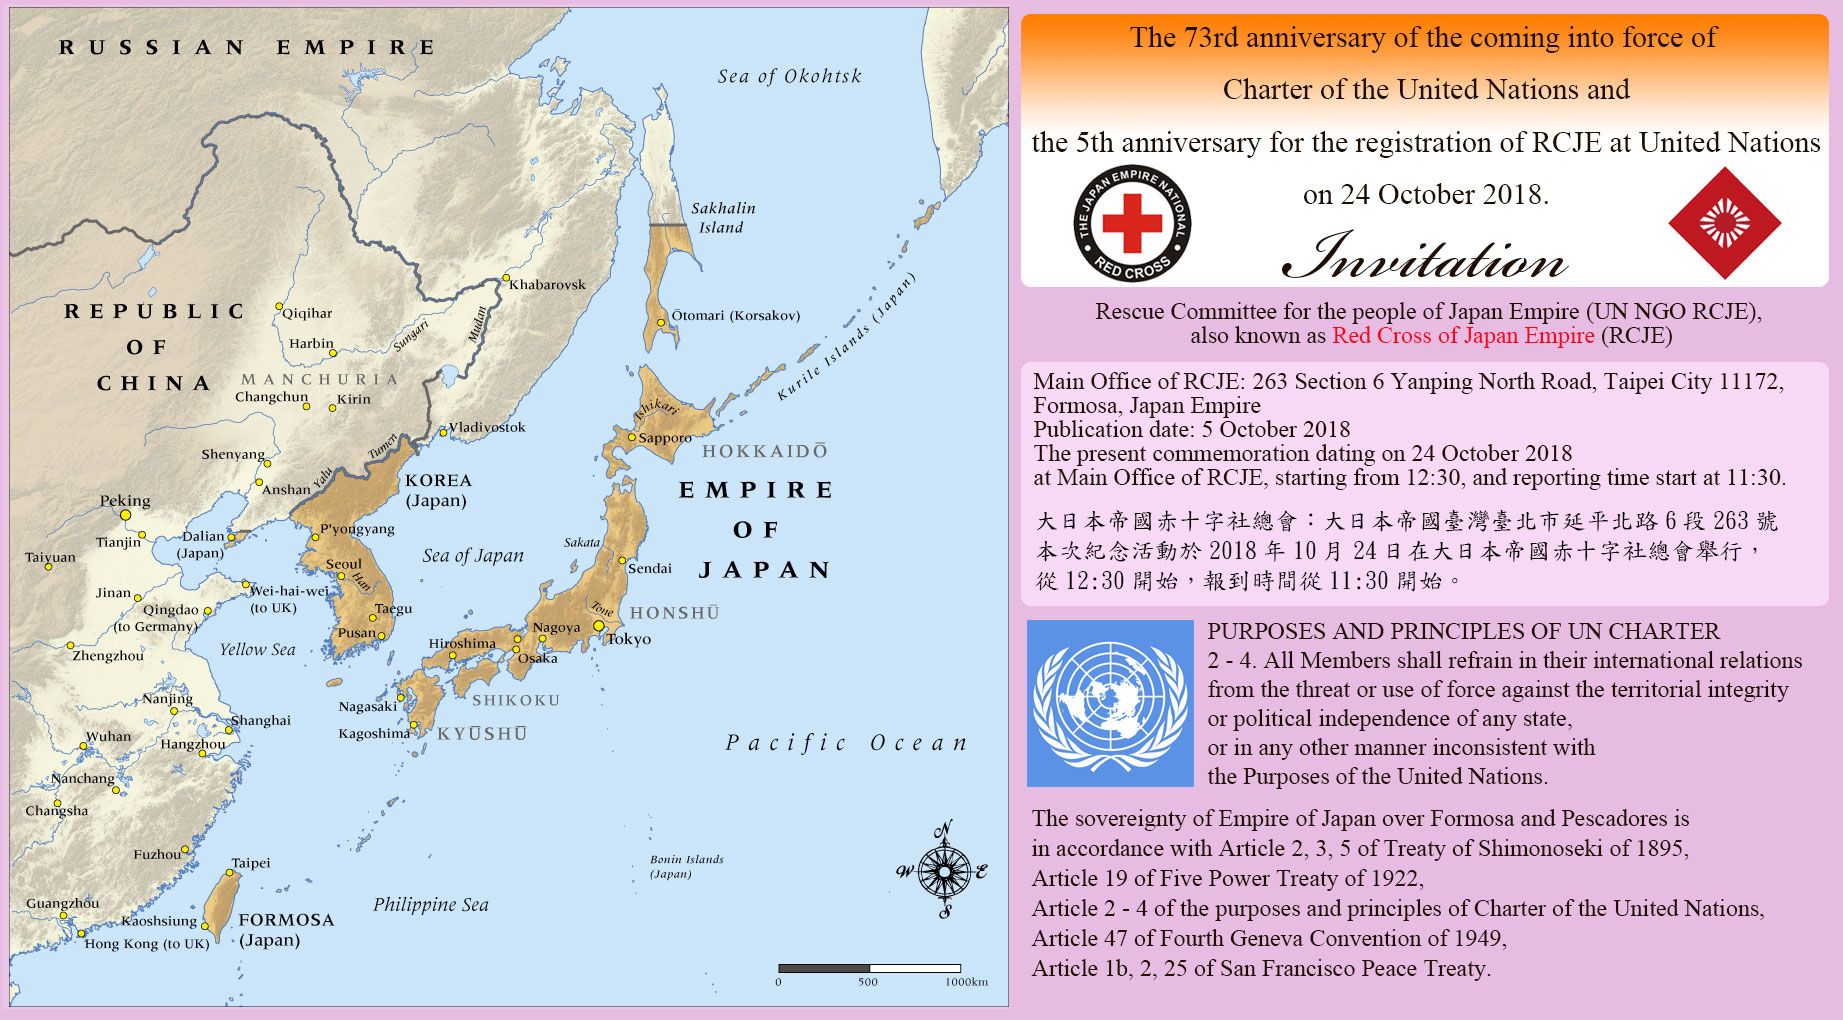 Red Cross of Japan Eempire 24 Oct 2018